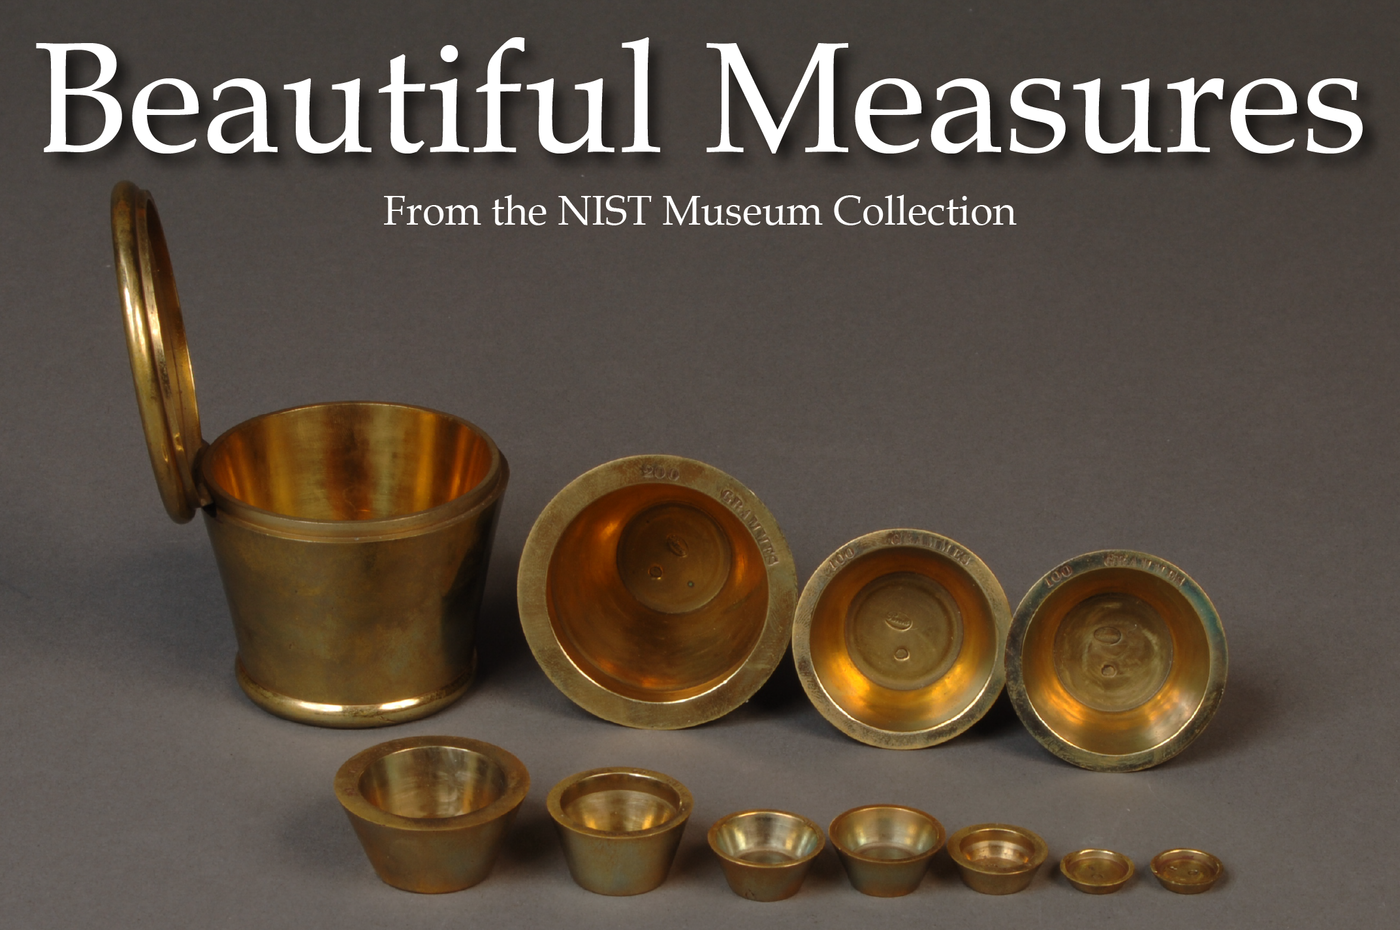 "French Nested Weights with ""Beautiful Measures: from the NIST Museum Collection"" text overlaying"